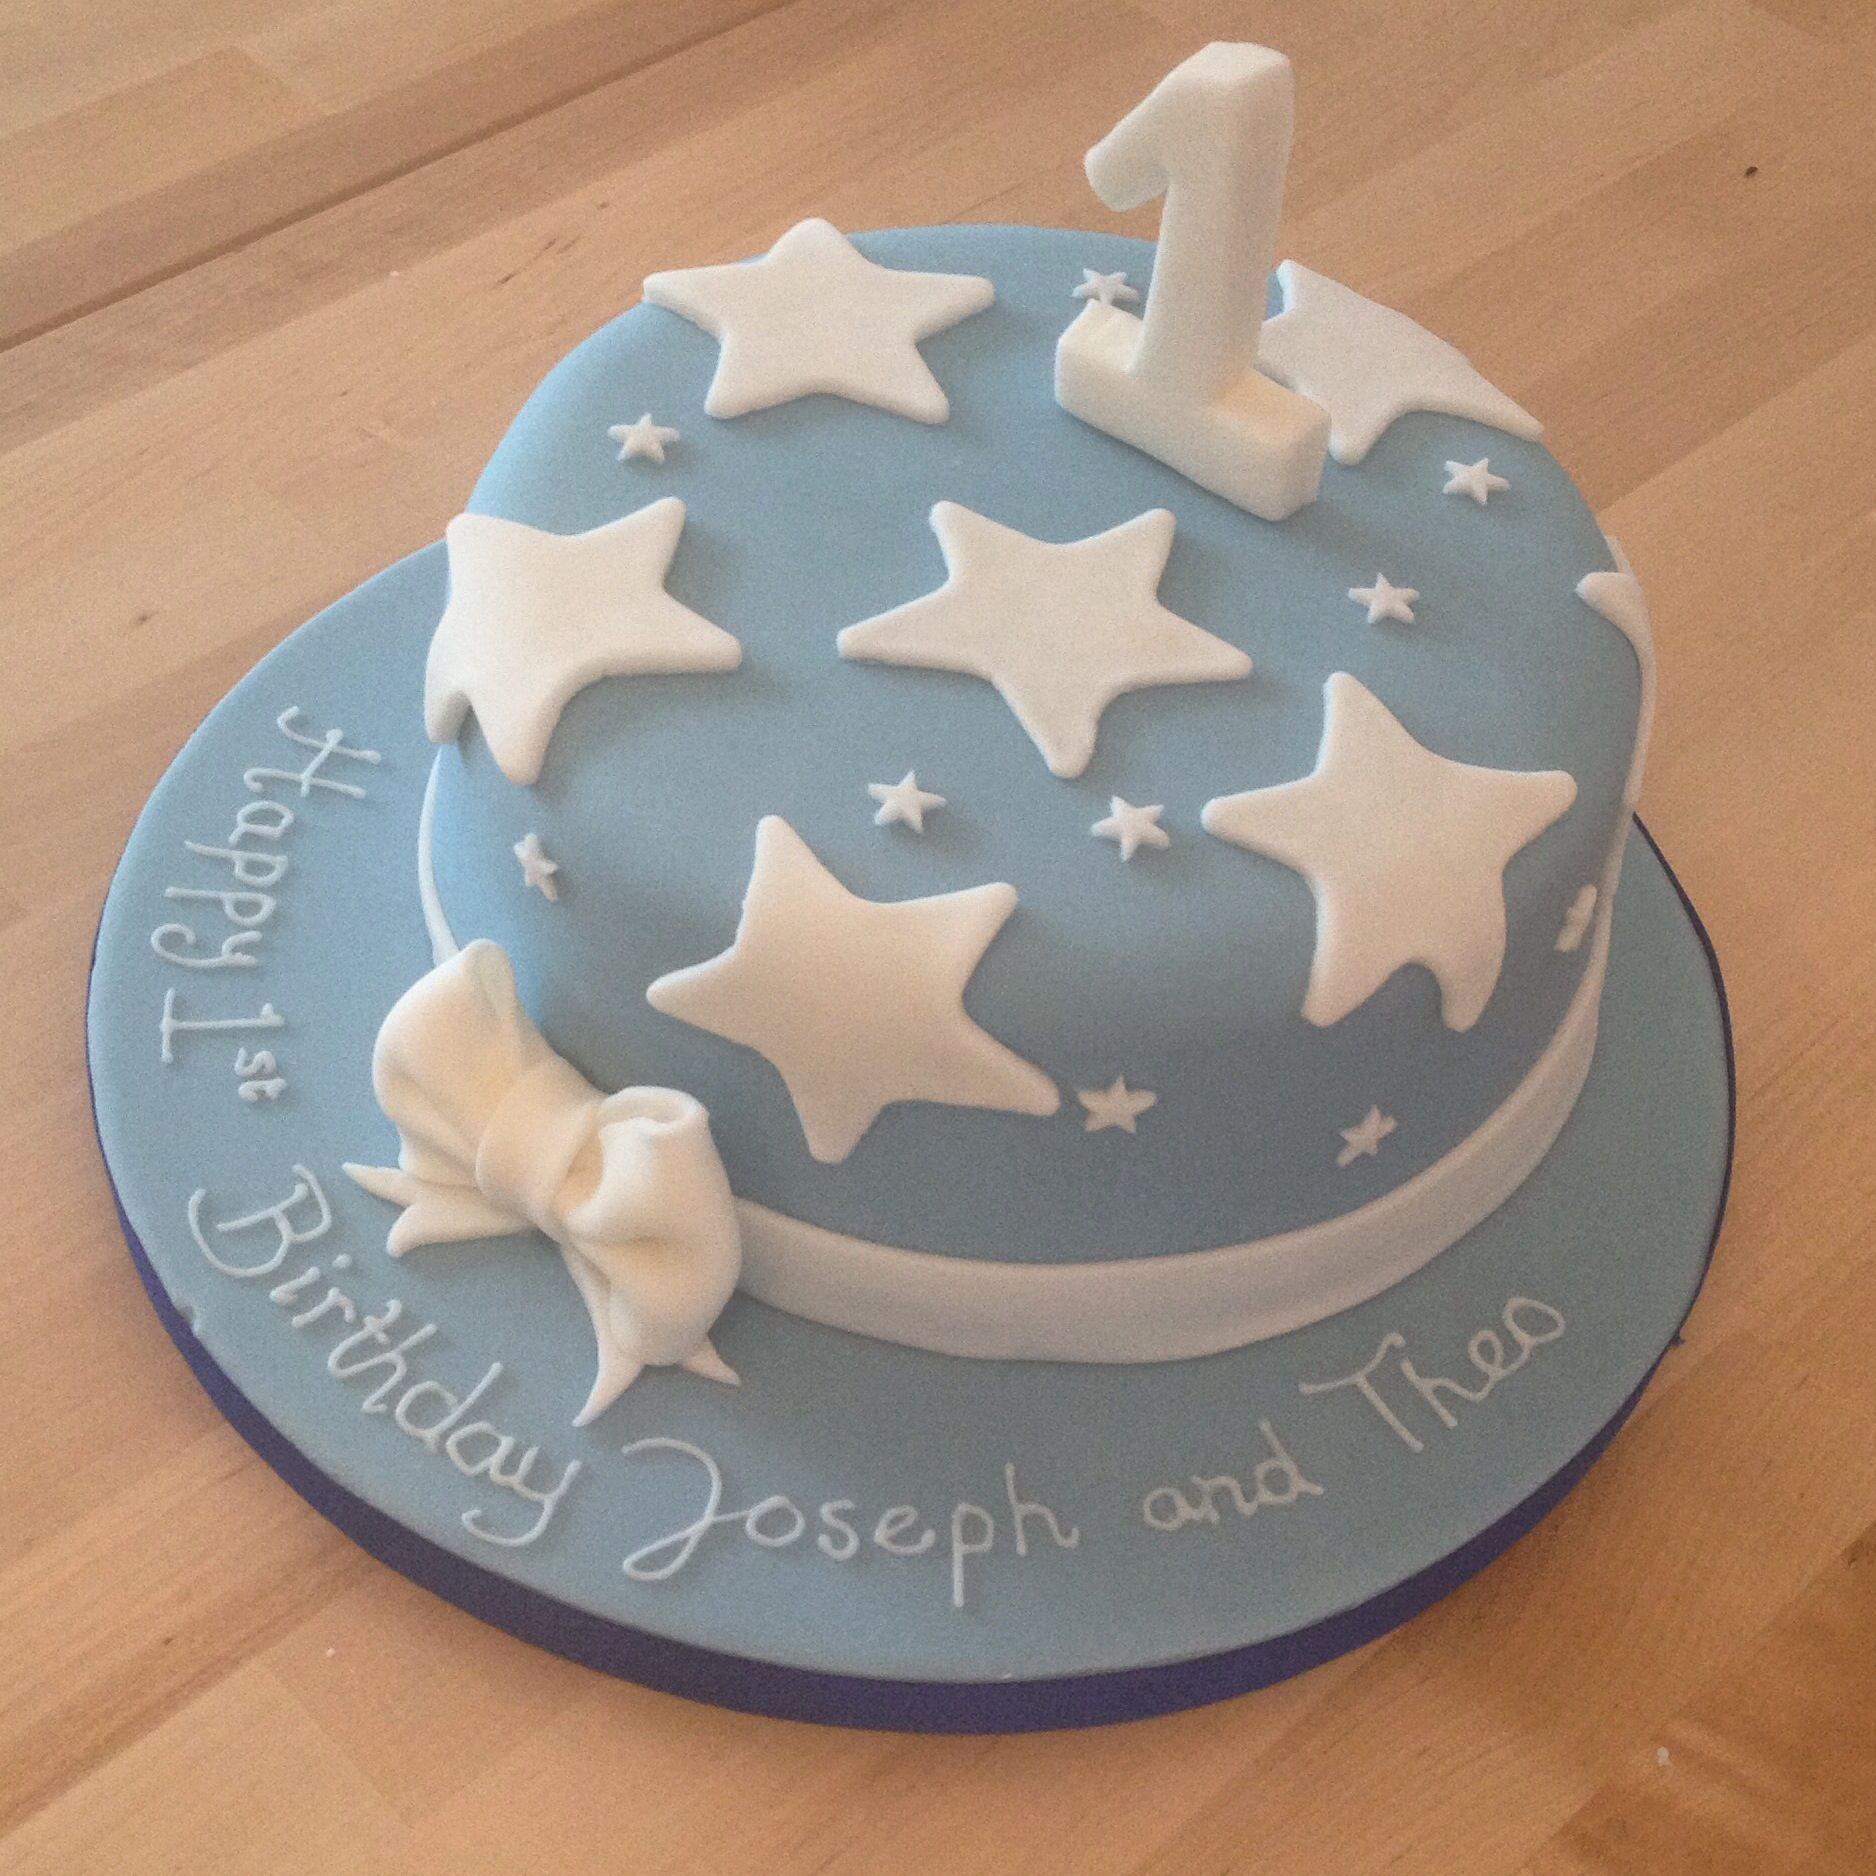 1st Birthday Cake For A Boy Baby Blue With White Stars